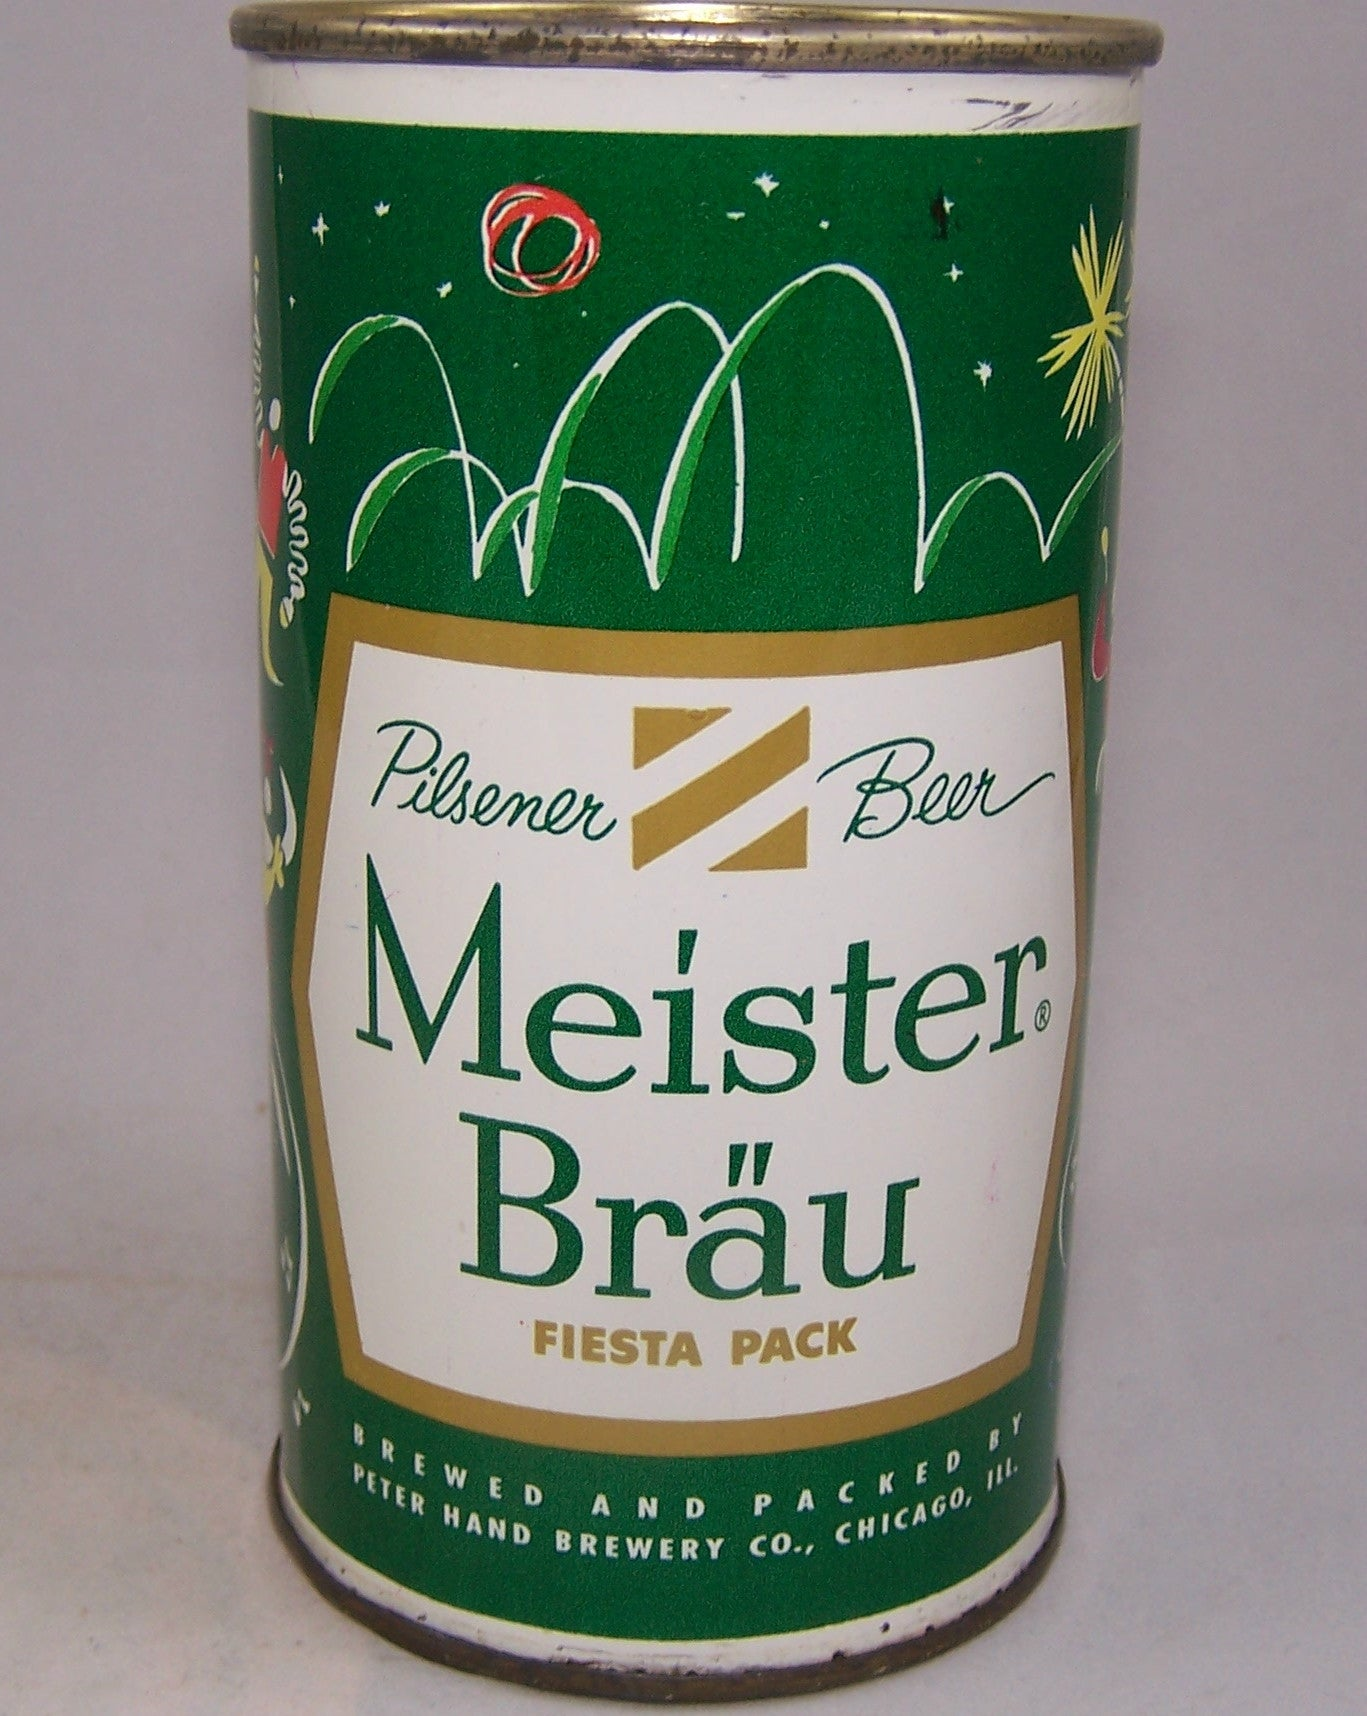 Meister Brau Beer, Country Can, (South America) USBC 97-13, Grade 1/1+  sold 6/18/16